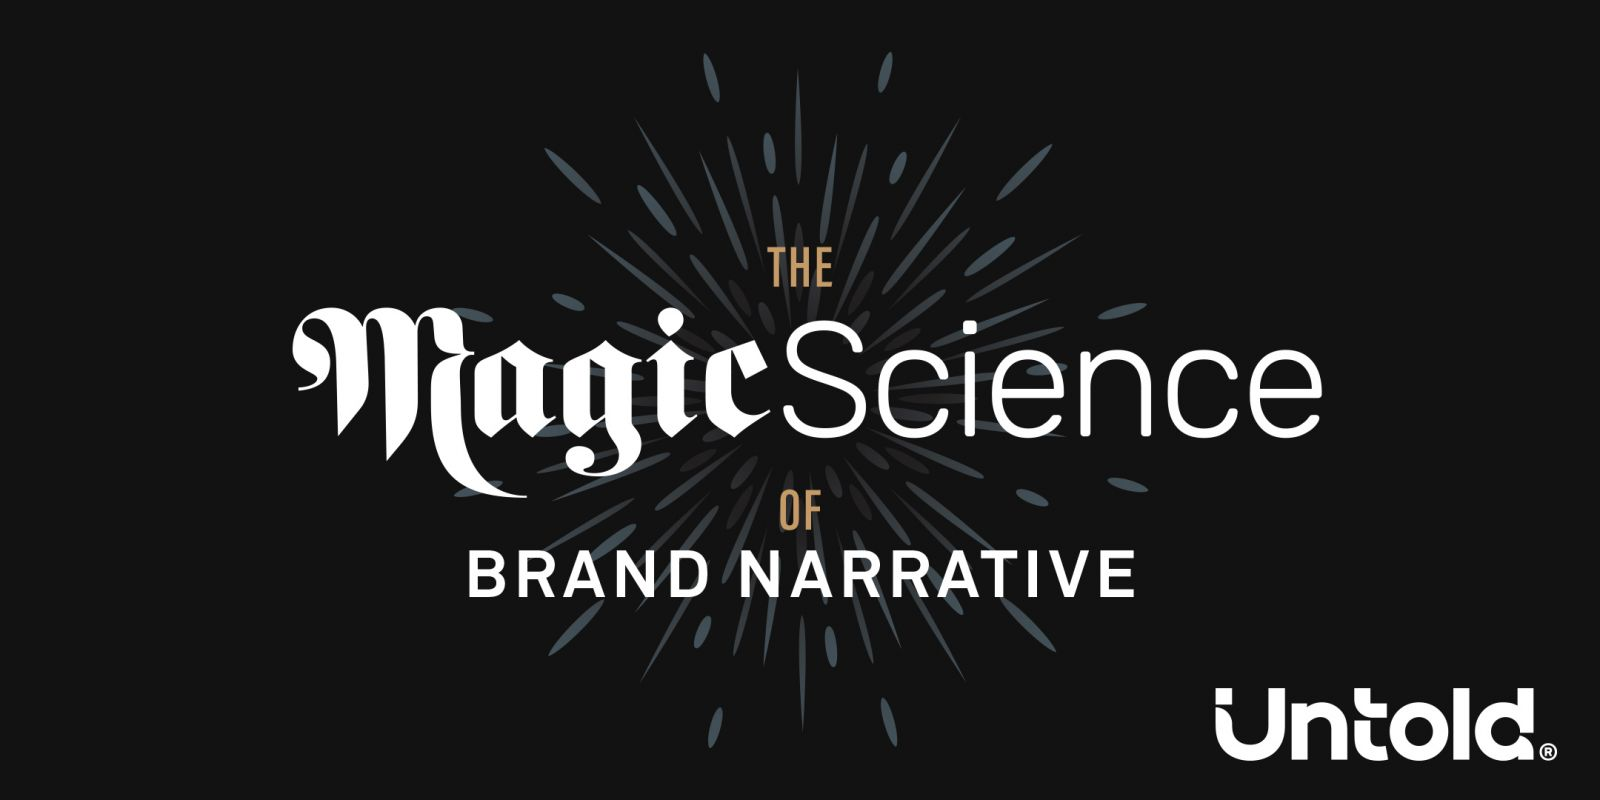 The Magic Science of Brand Narrative